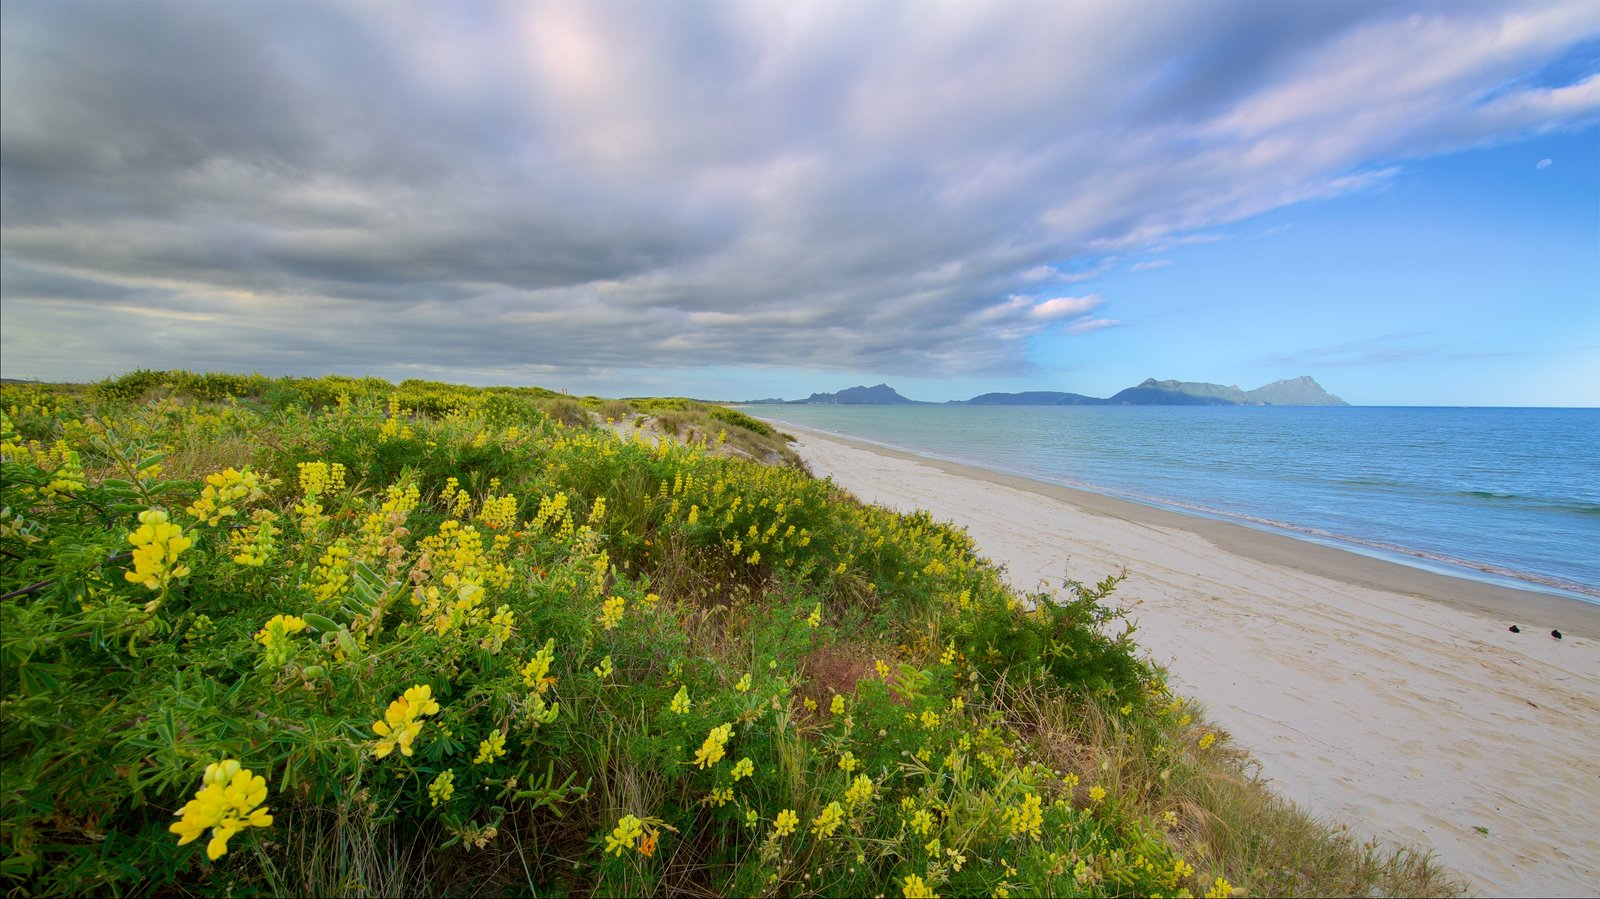 Whangarei Heads which includes wildflowers, general coastal views and a beach